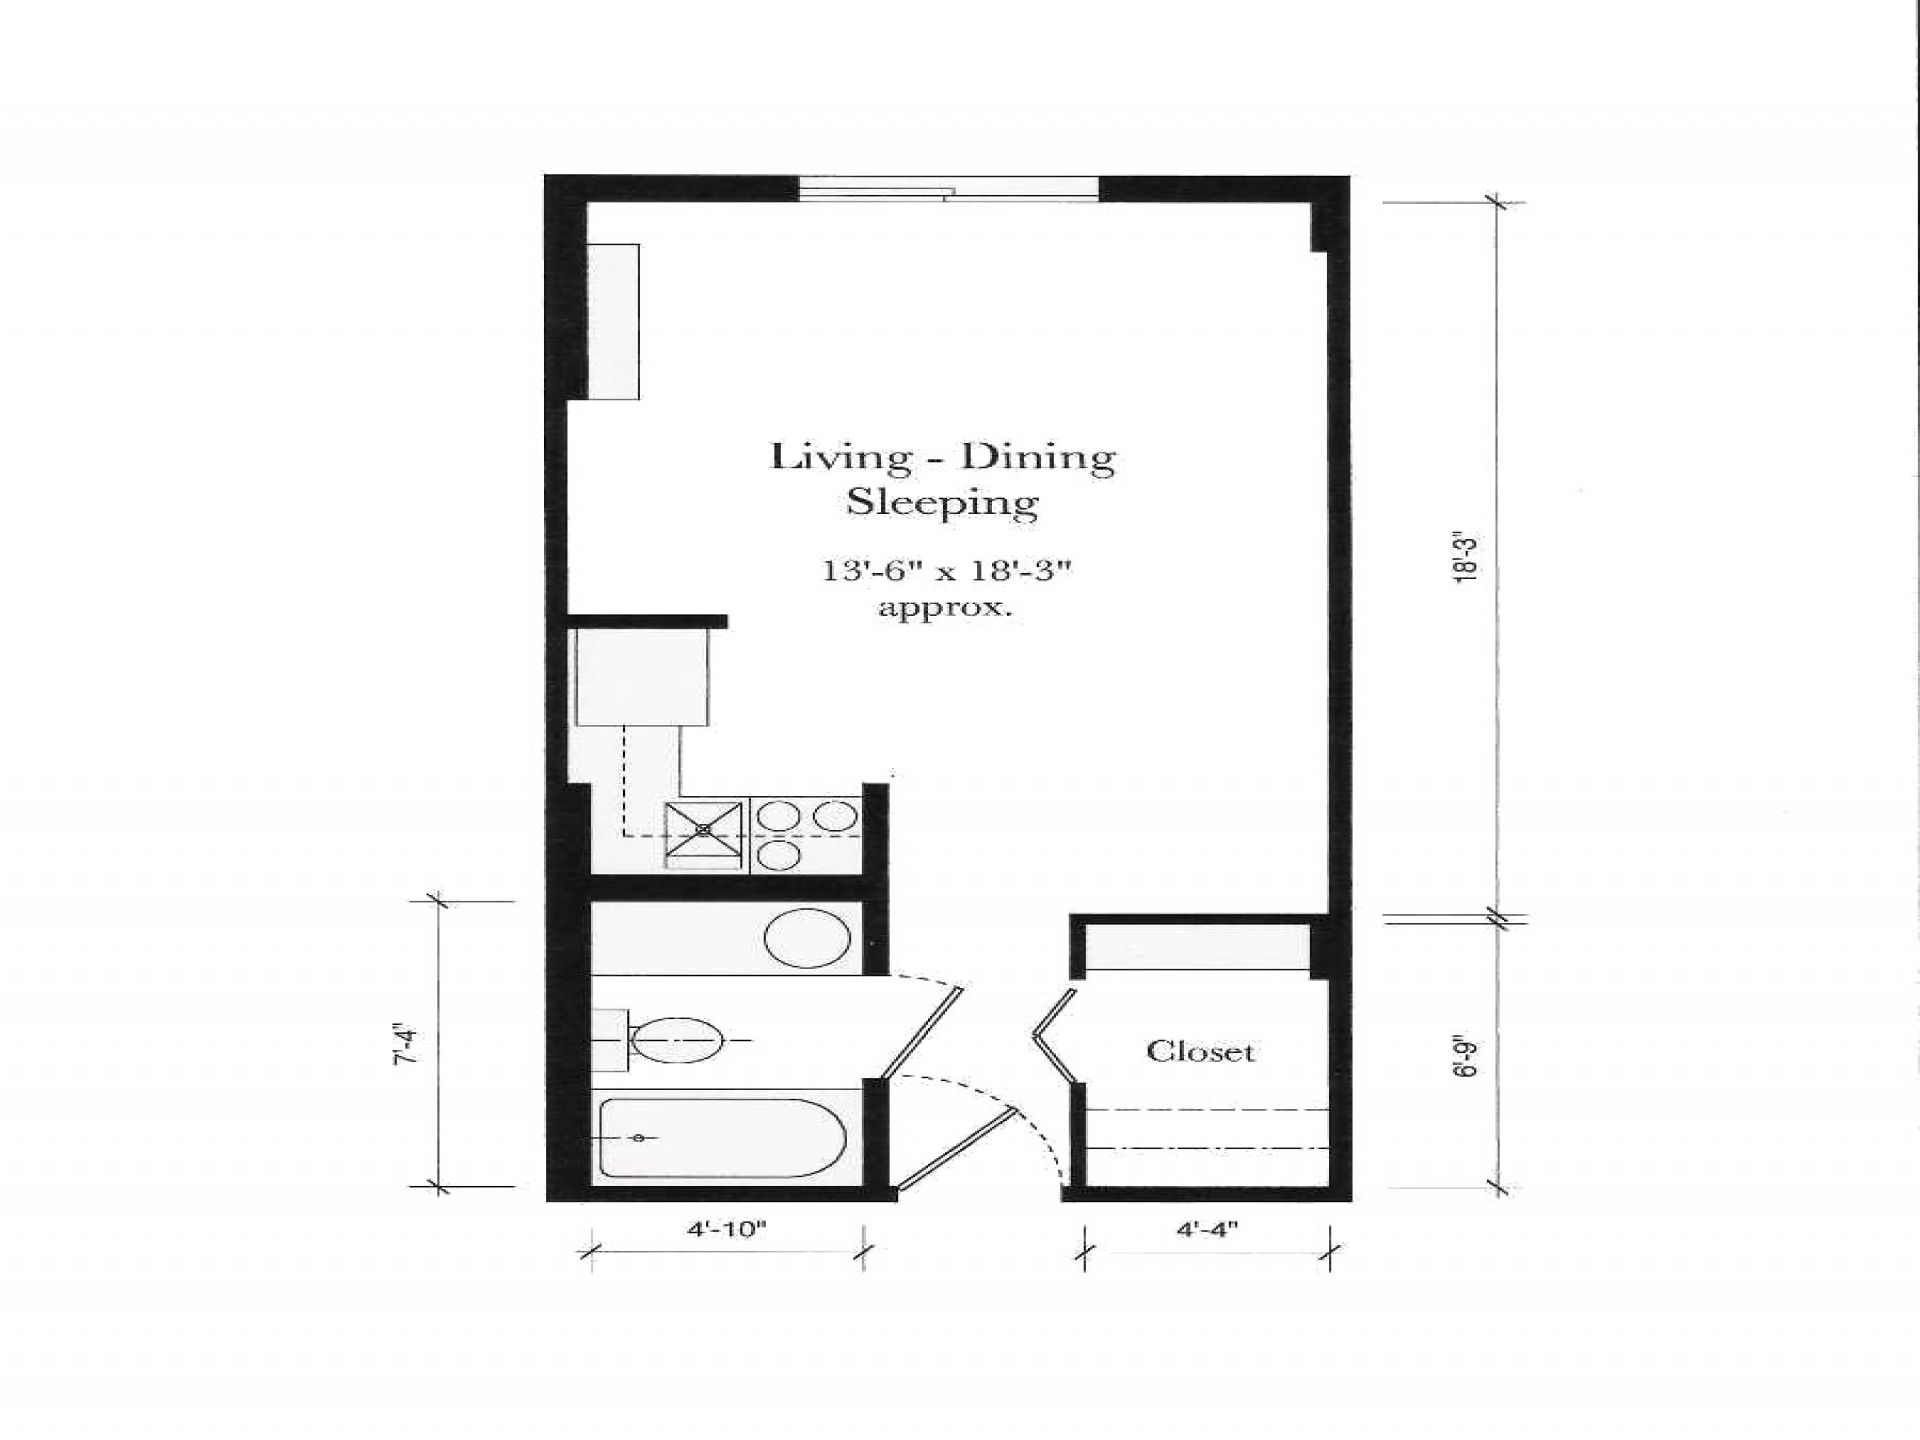 Apartment studio floor plan simple floor design studio for Simple apartment design